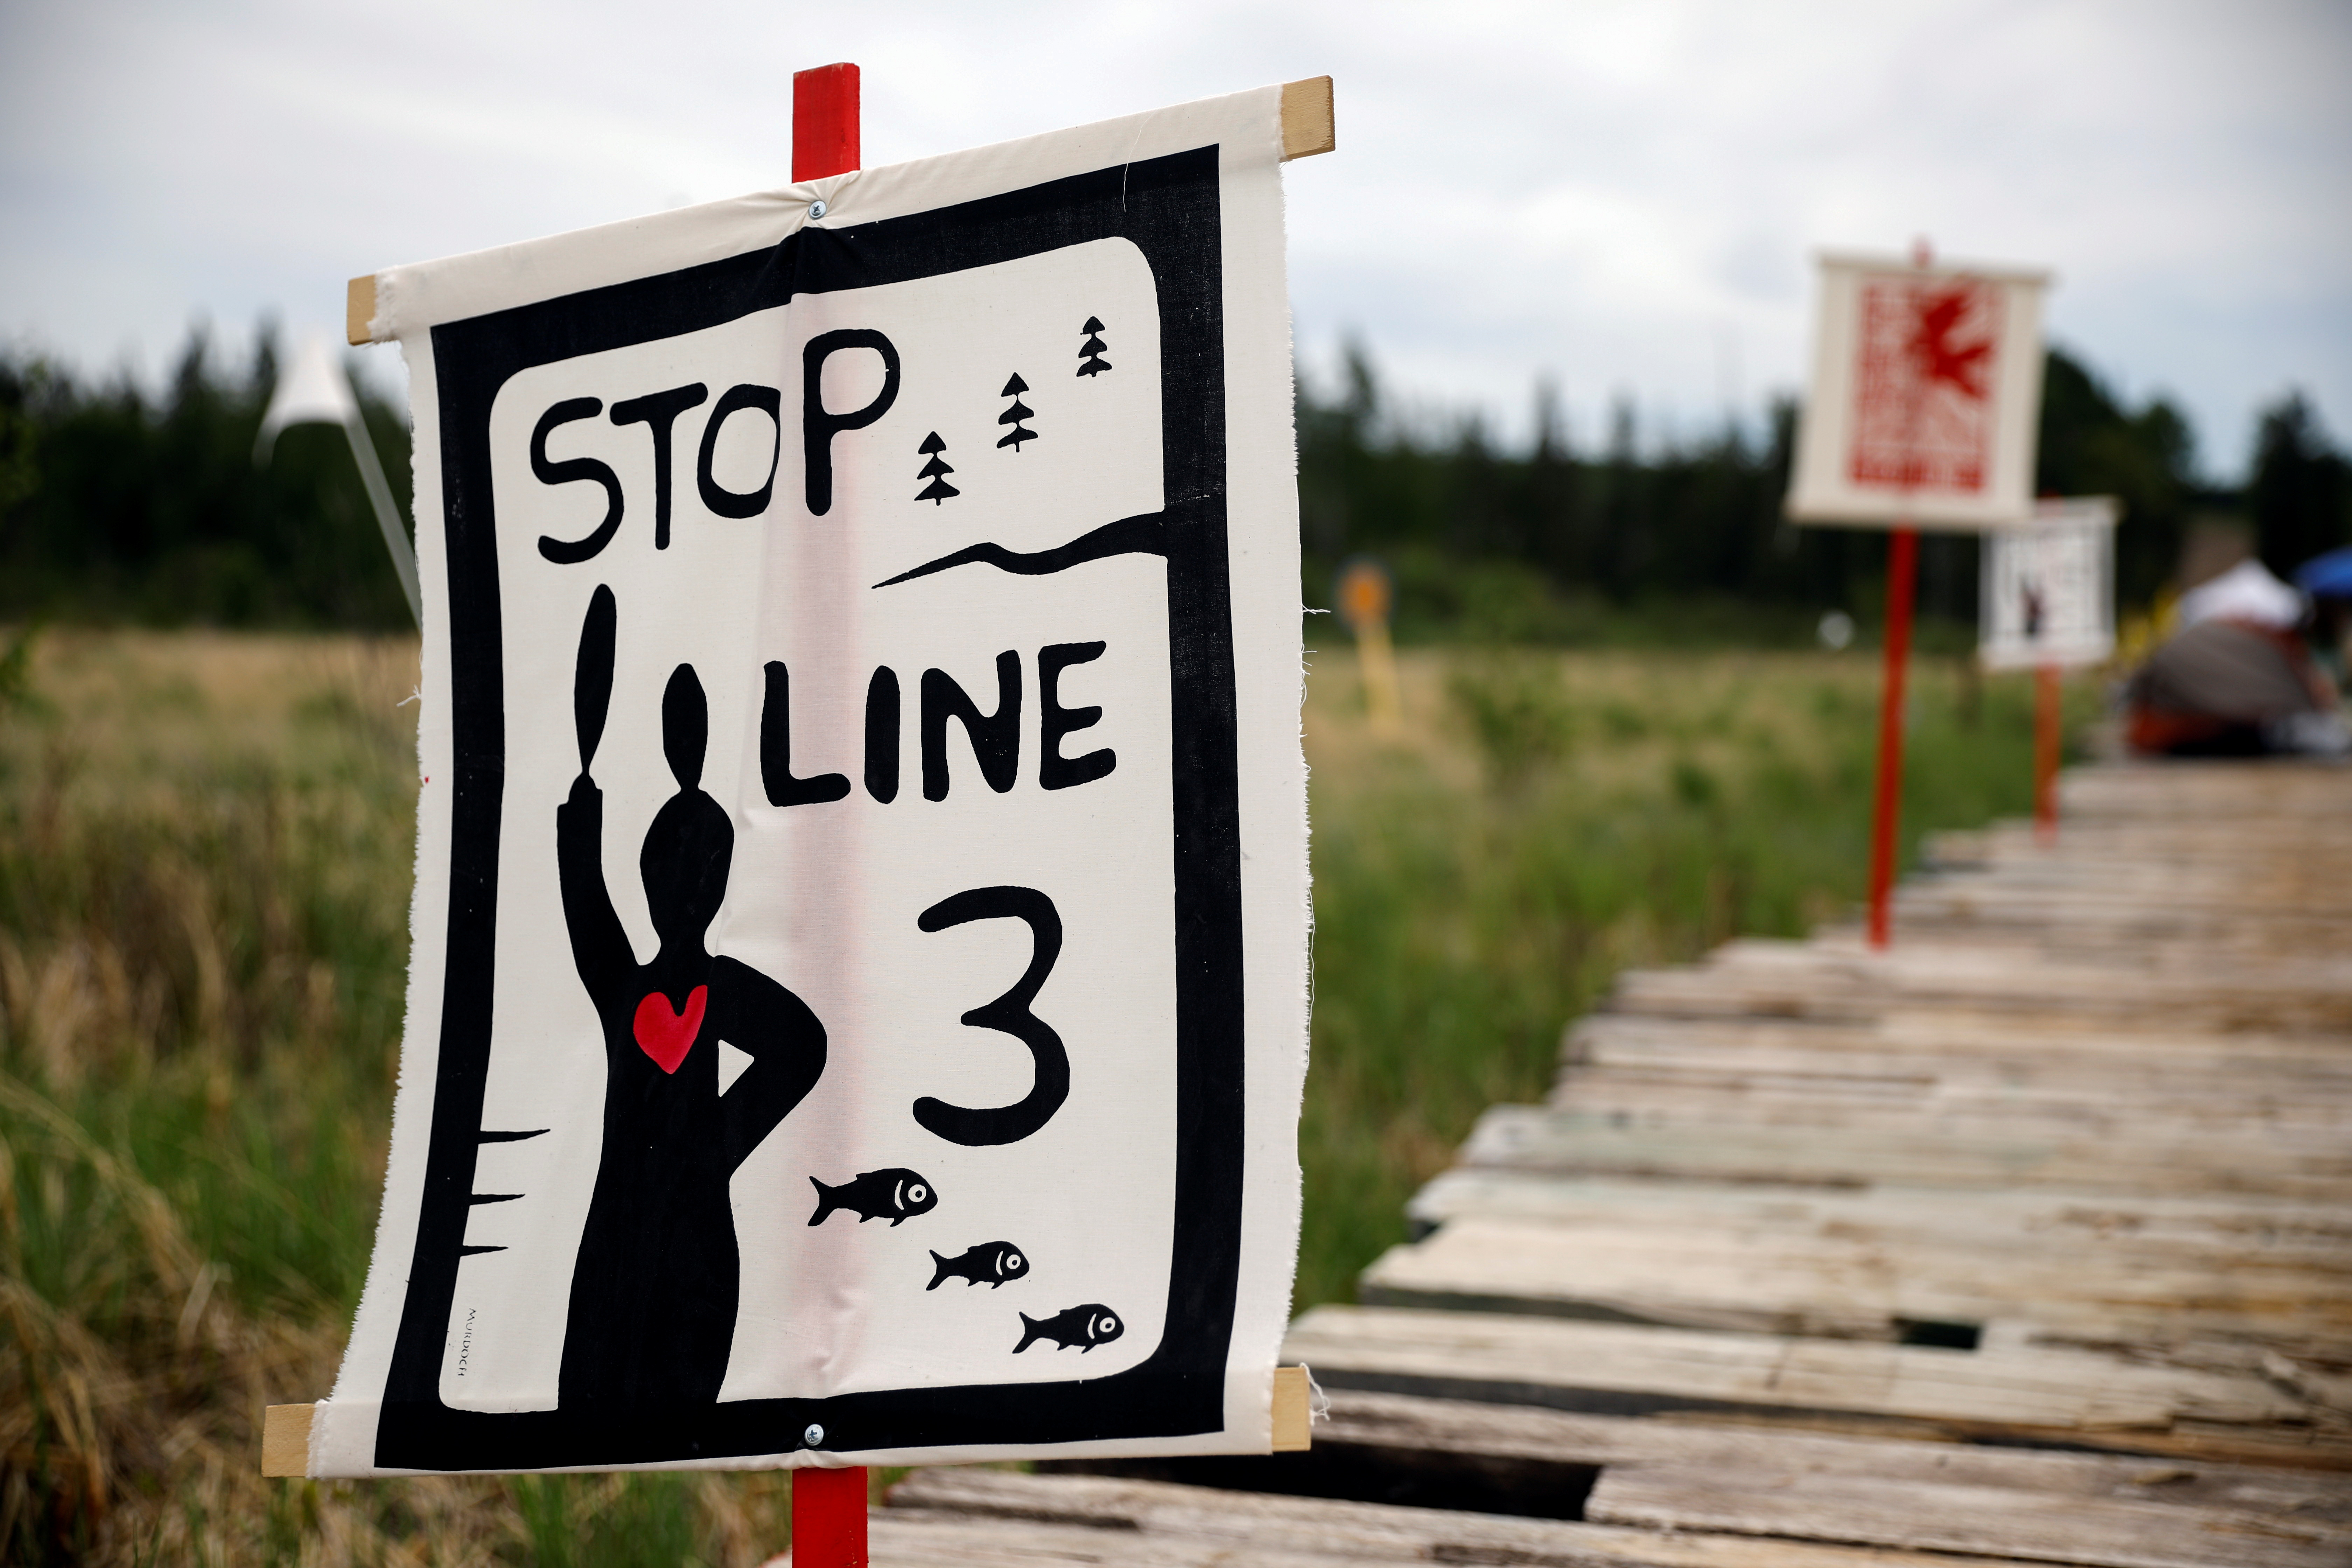 Protest signage on display at a camp established by indigenous leaders and water protectors at the Mississippi headwaters, one body of water the Line 3 pipeline will cross following a series of demonstrations in protest of the Line 3 pipeline, built by Enbridge Energy, in Solway, Minnesota, U.S., June 8, 2021. Picture taken June 8, 2021.  REUTERS/Nicholas Pfosi